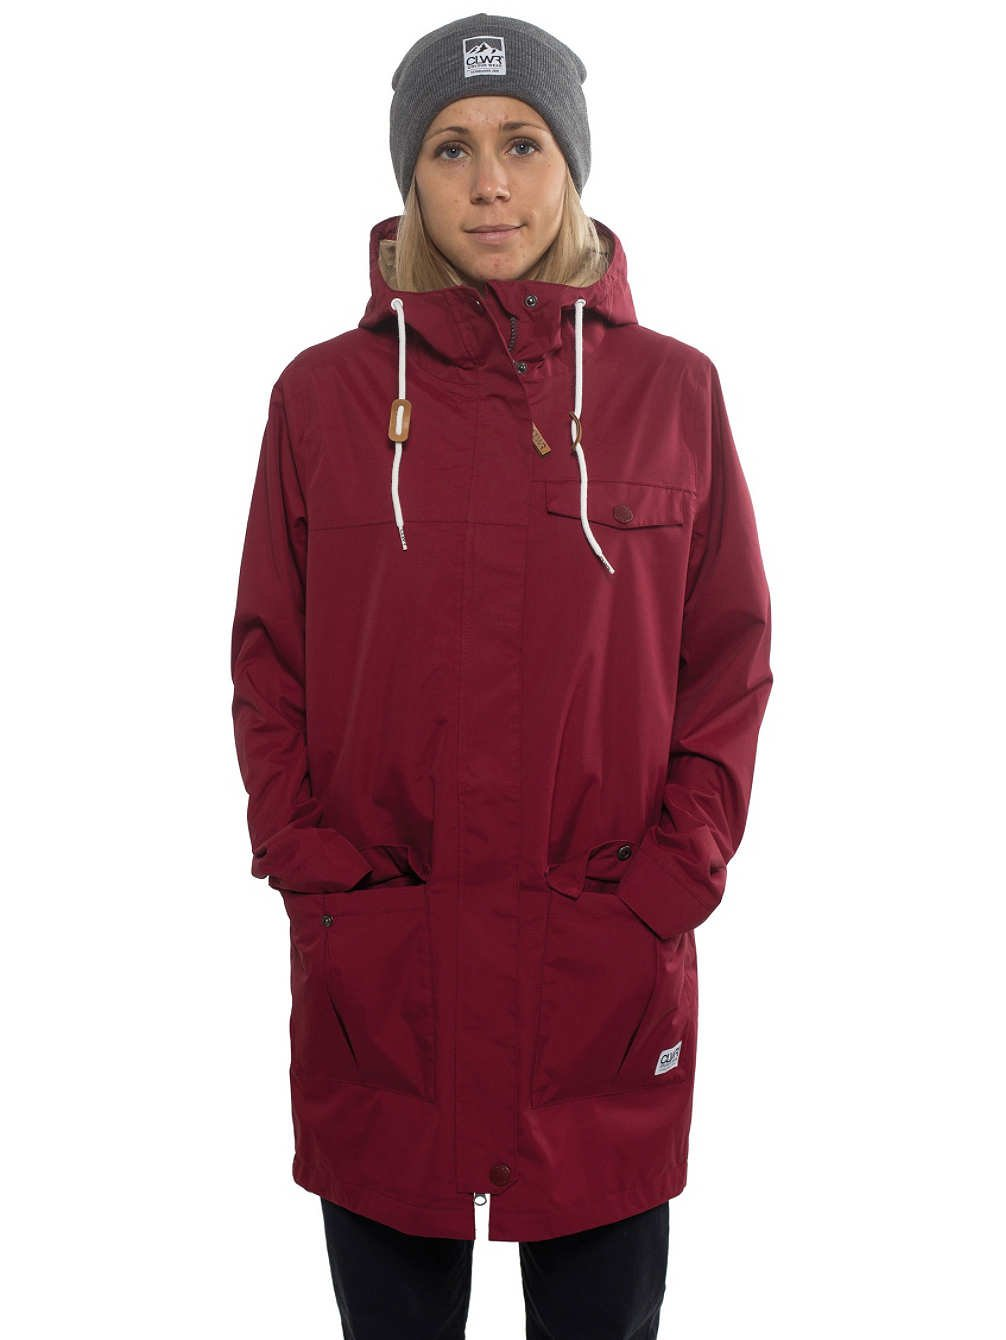 Damen Snowboard Jacke Colour Wear Jetty Parka Jacket